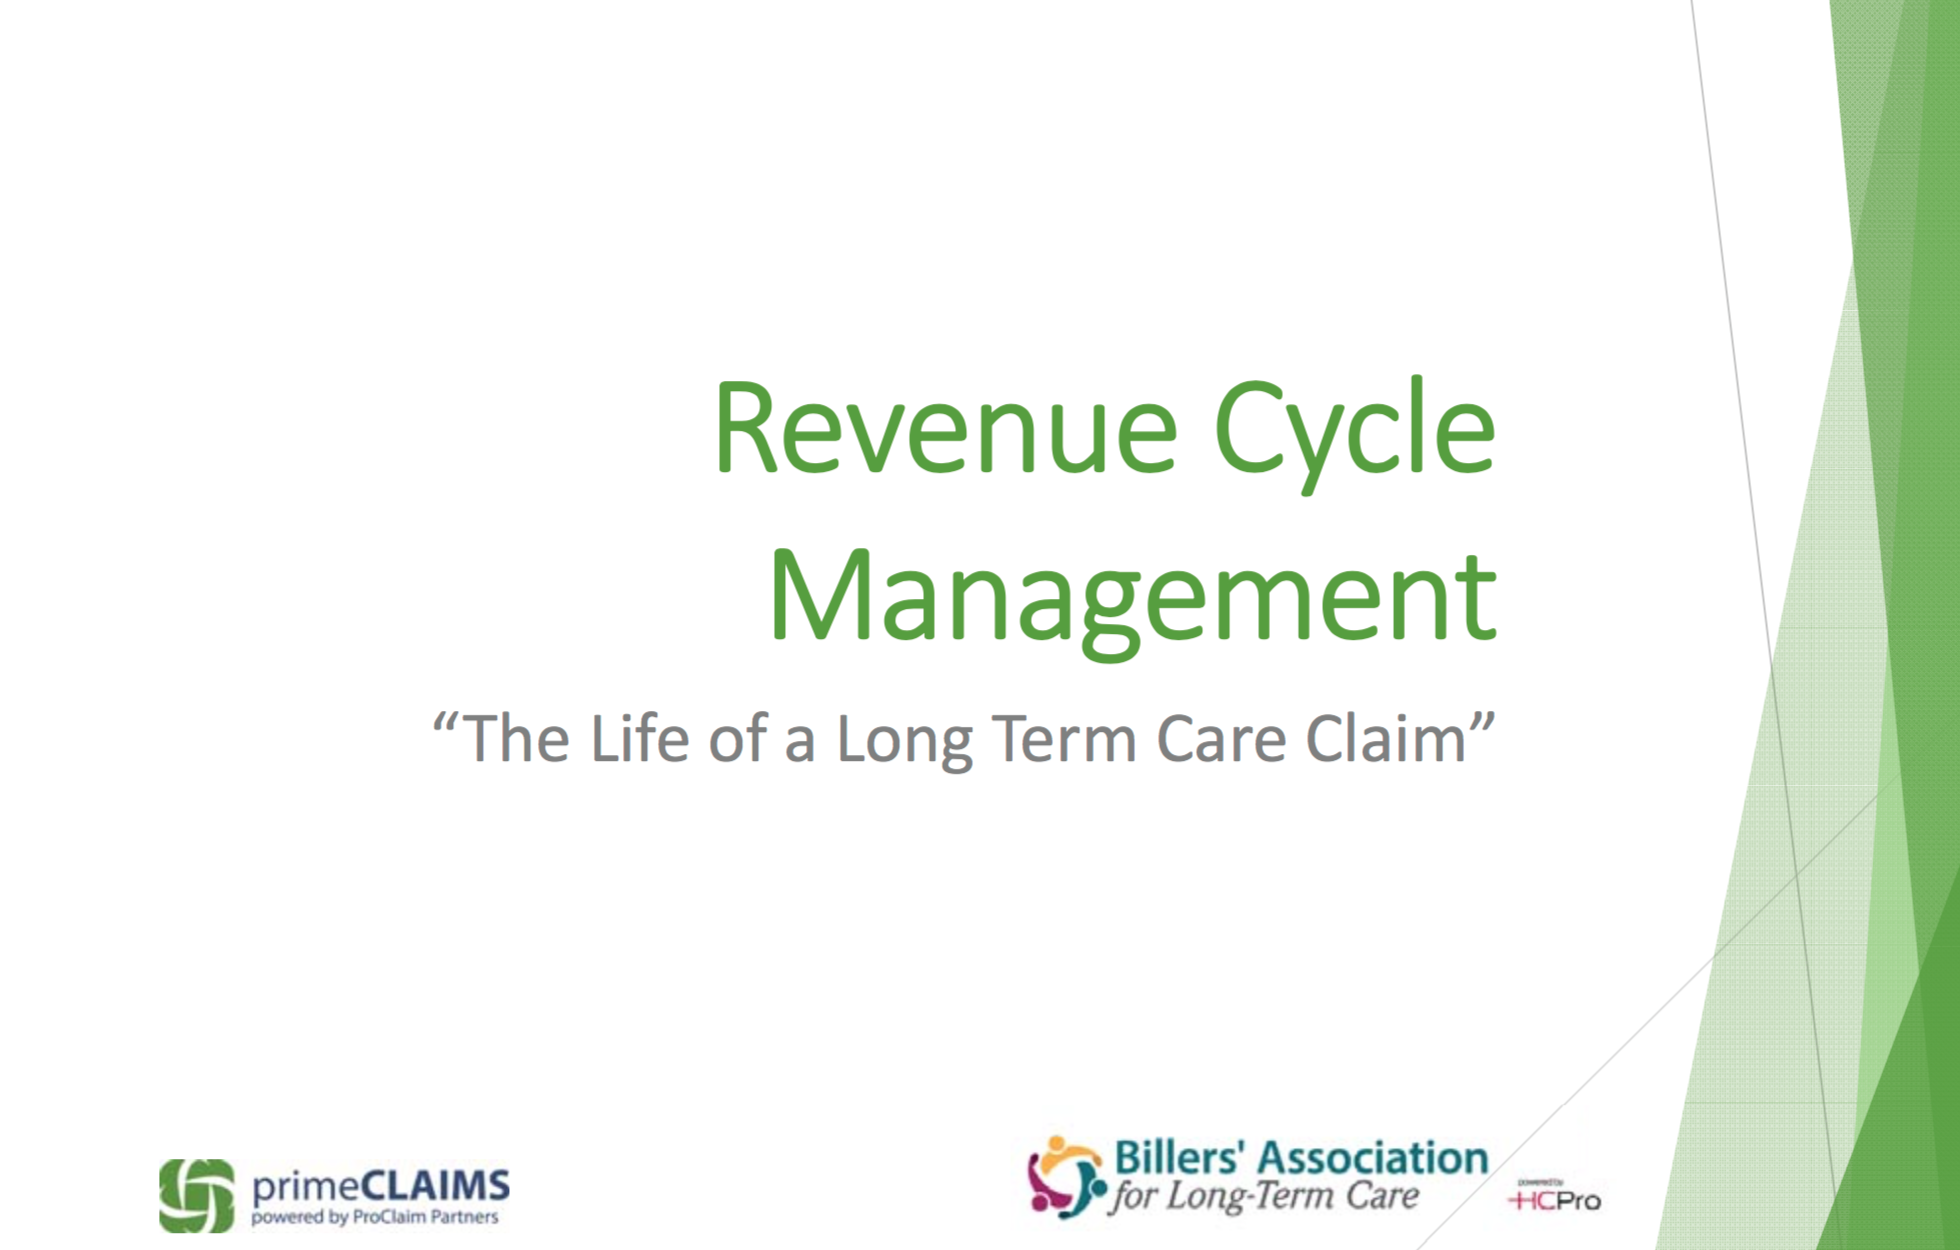 The Life of a Long-Term Care Claim with Pathway Health